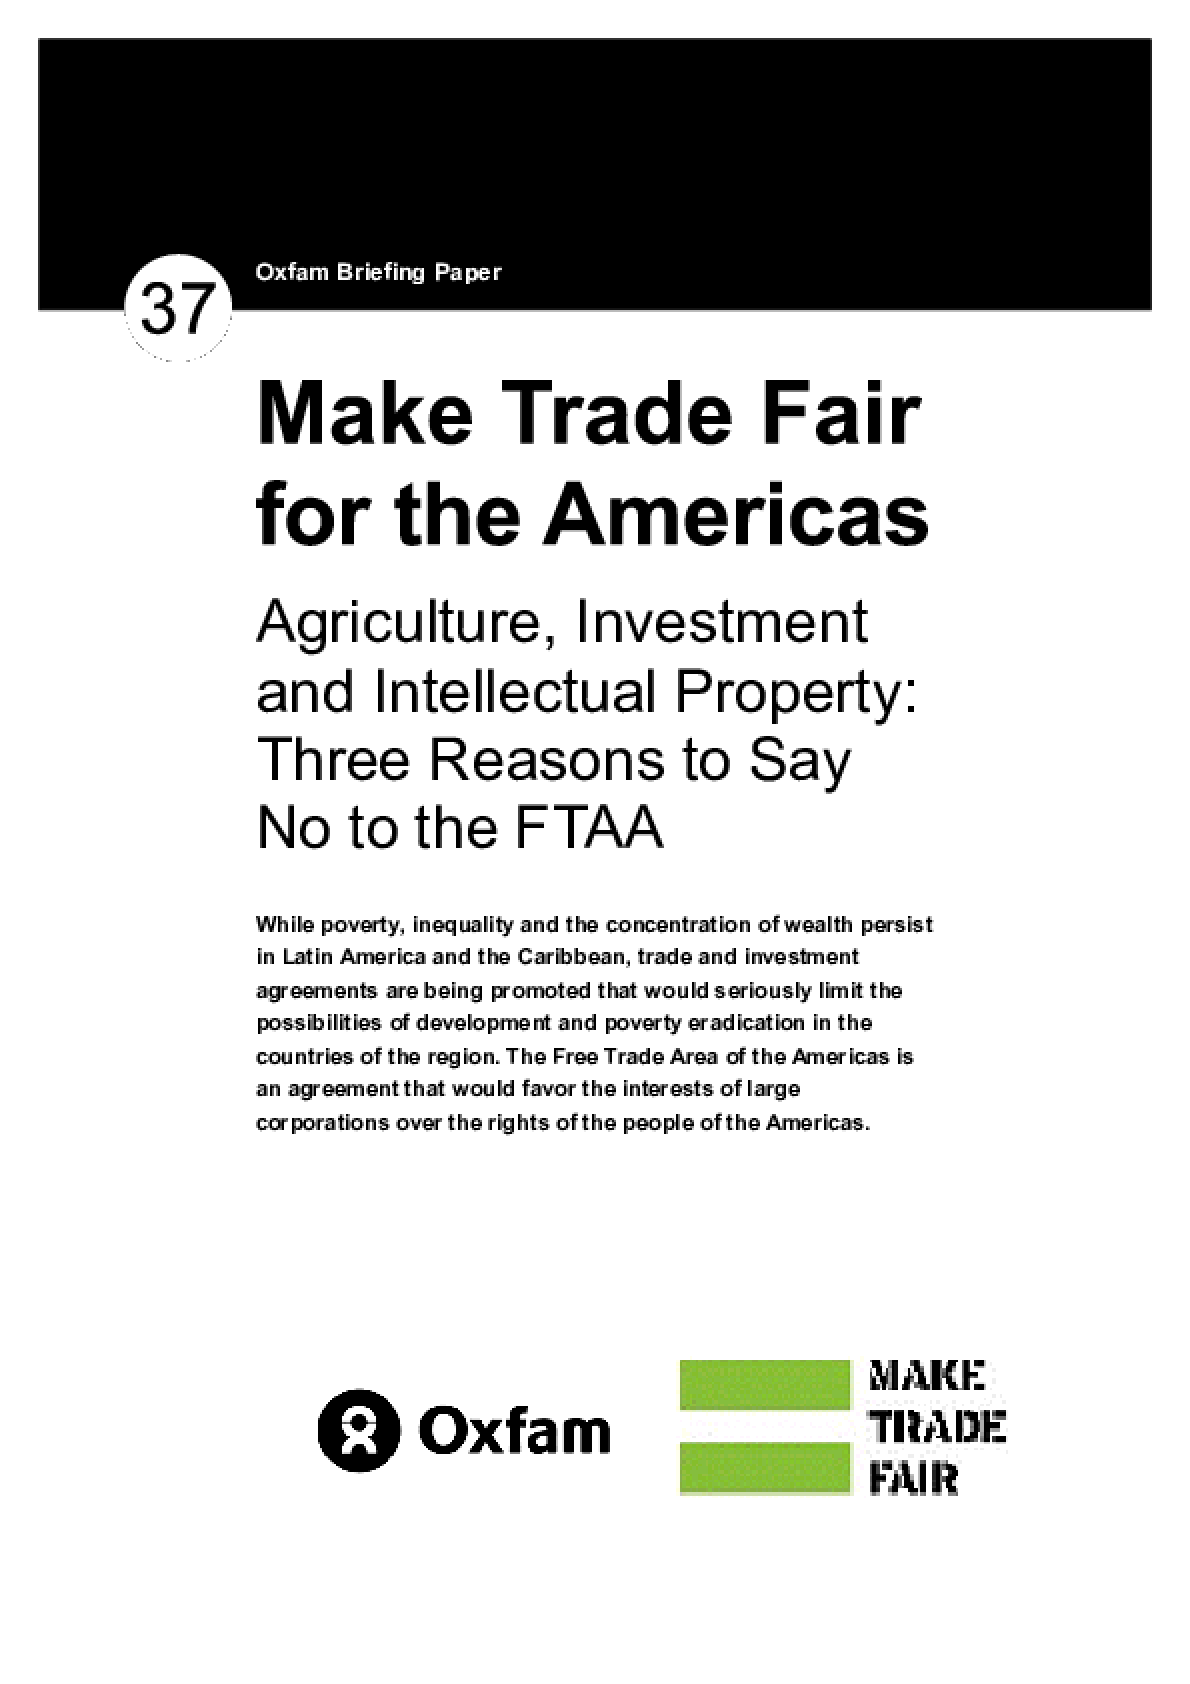 Make Trade Fair in the Americas: Agriculture, Investment and Intellectual Property: Three reasons to say no to the FTAA